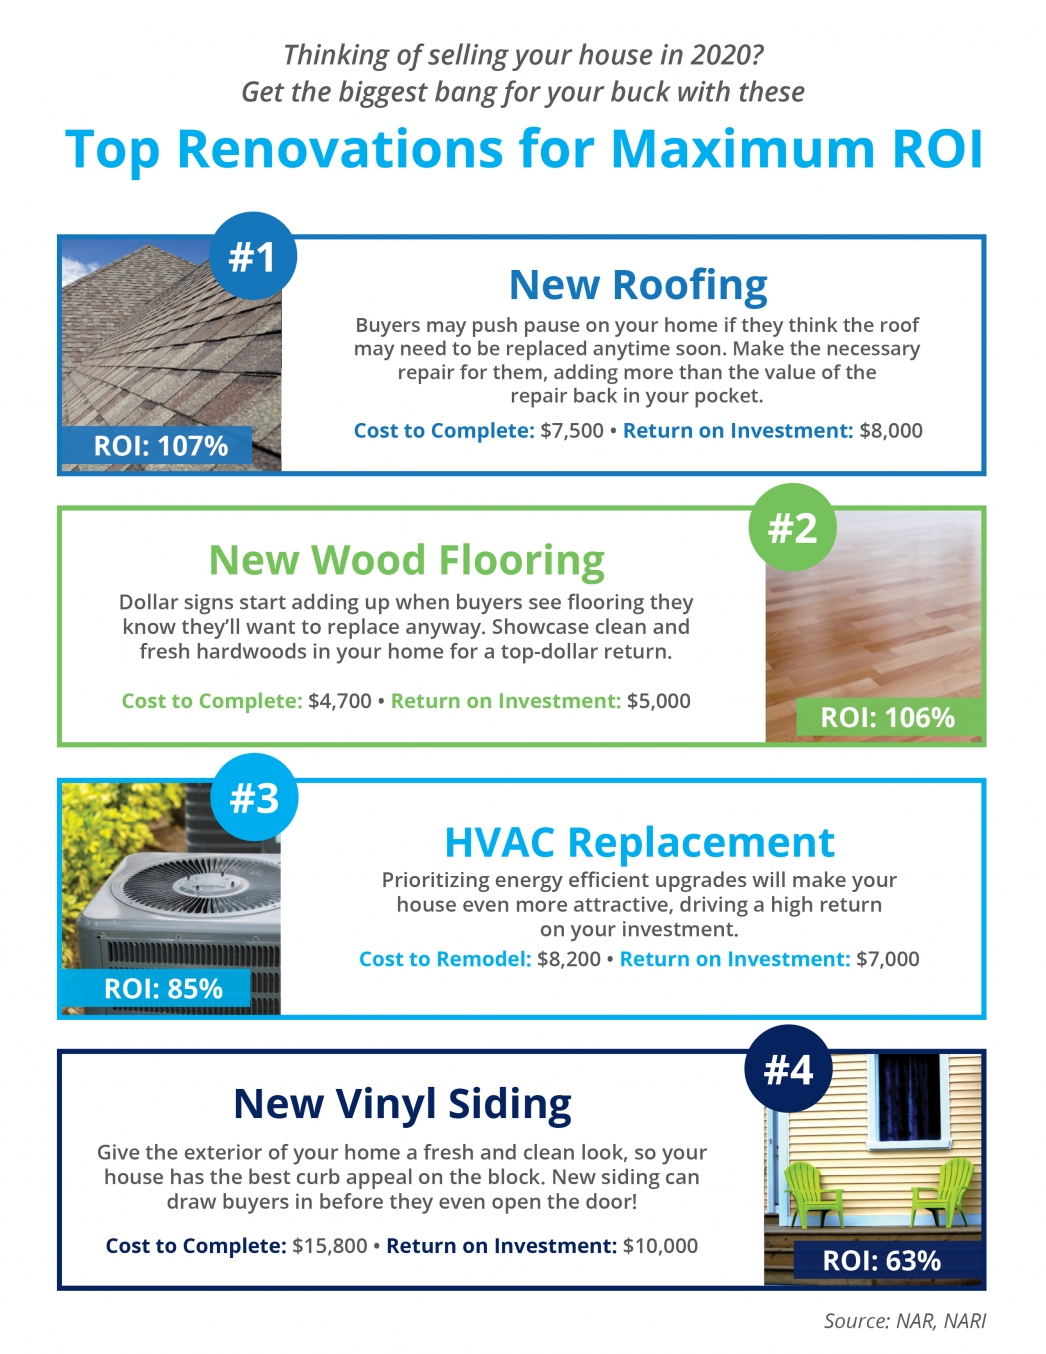 4 Top Renovations for Maximum ROI